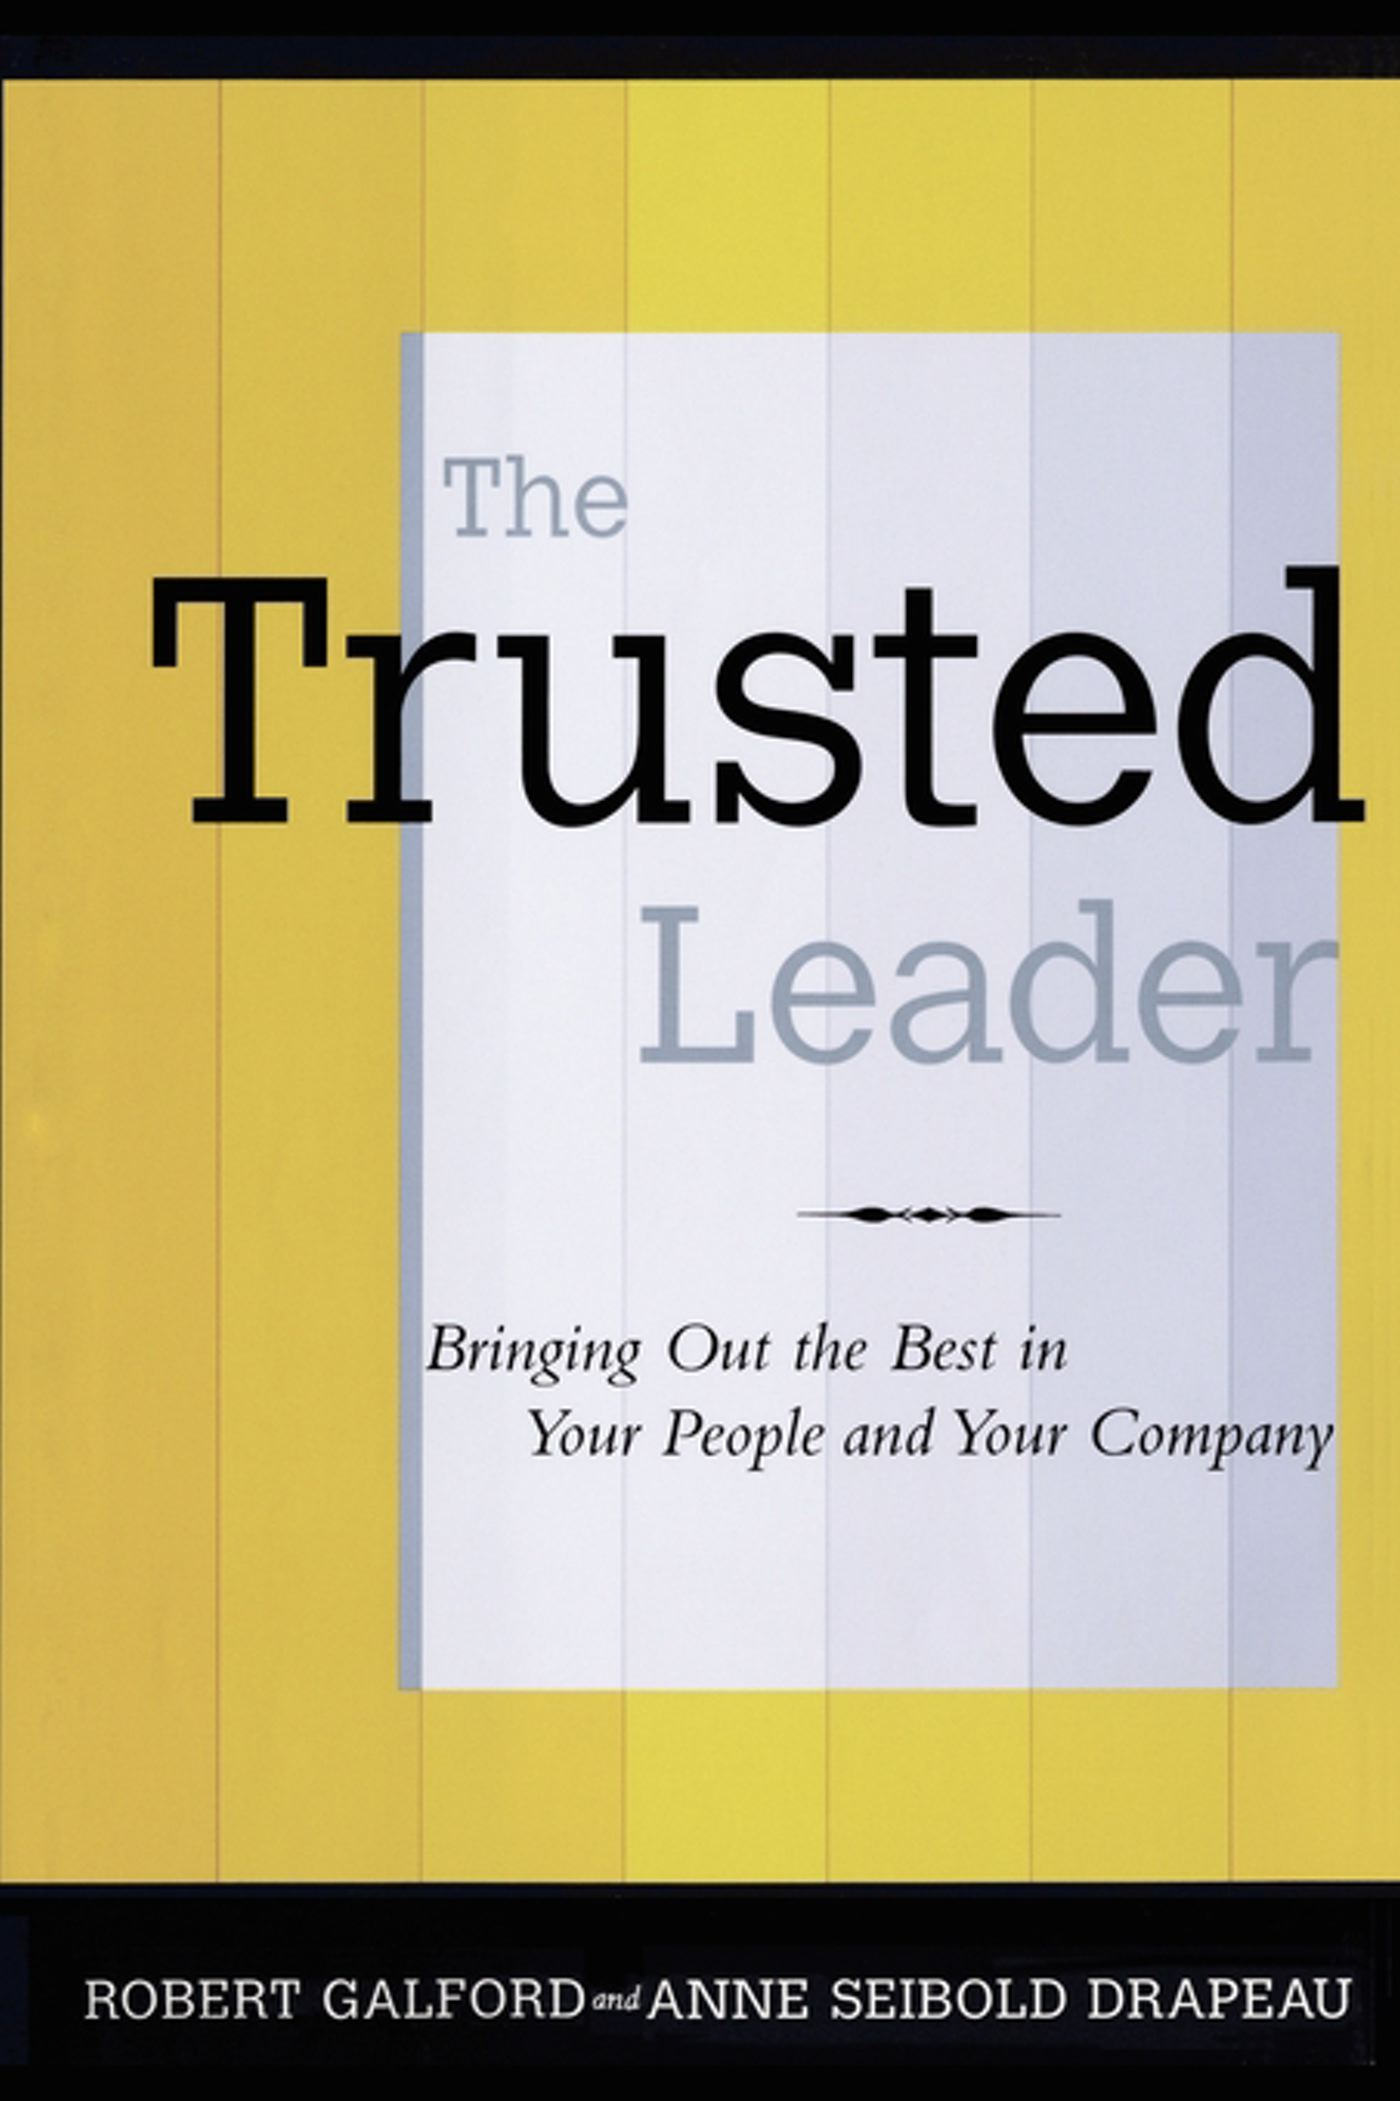 Download Ebook The Trusted Leader by Robert M. Galford Pdf